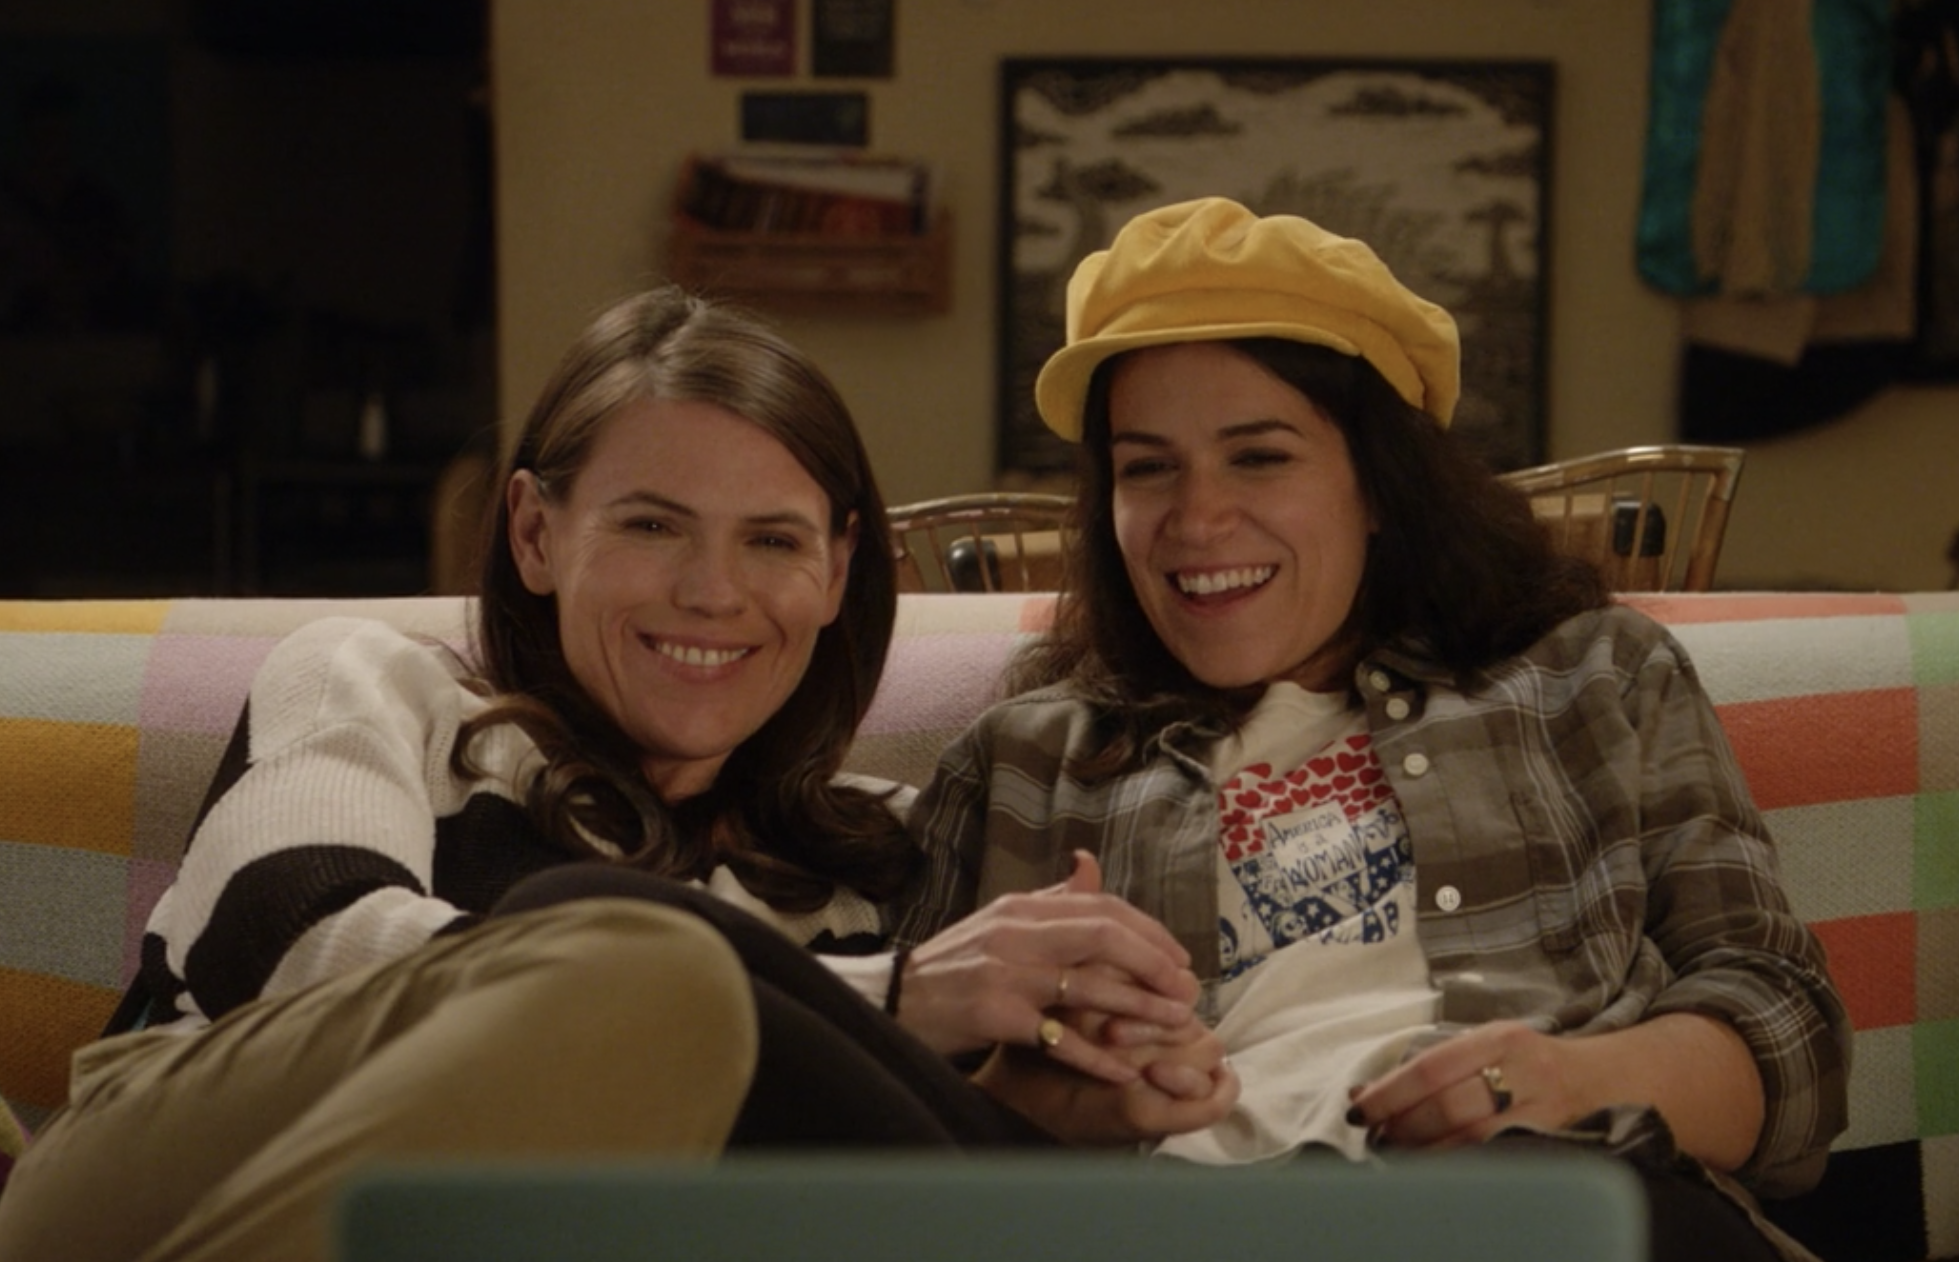 Abbi and Leslie watching TV while holding hands